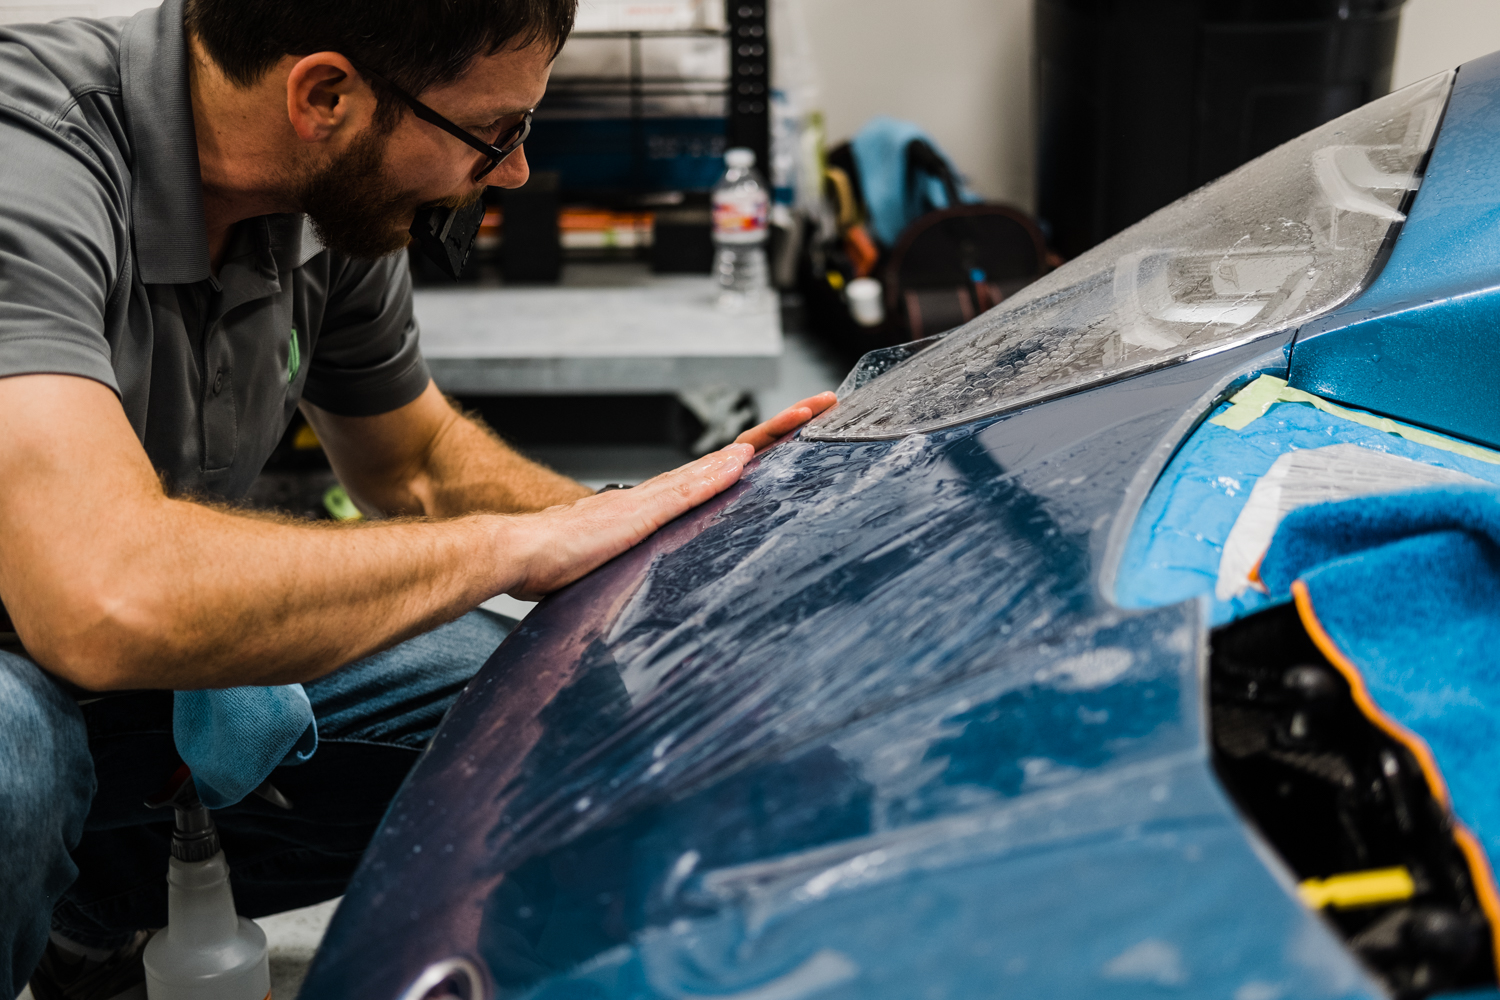 Ford GT-XPEL Ultimate Paint Protection Film-Full-body Wrap-Paint Protection Film-Clear Bra-Ford Performance-156.jpg